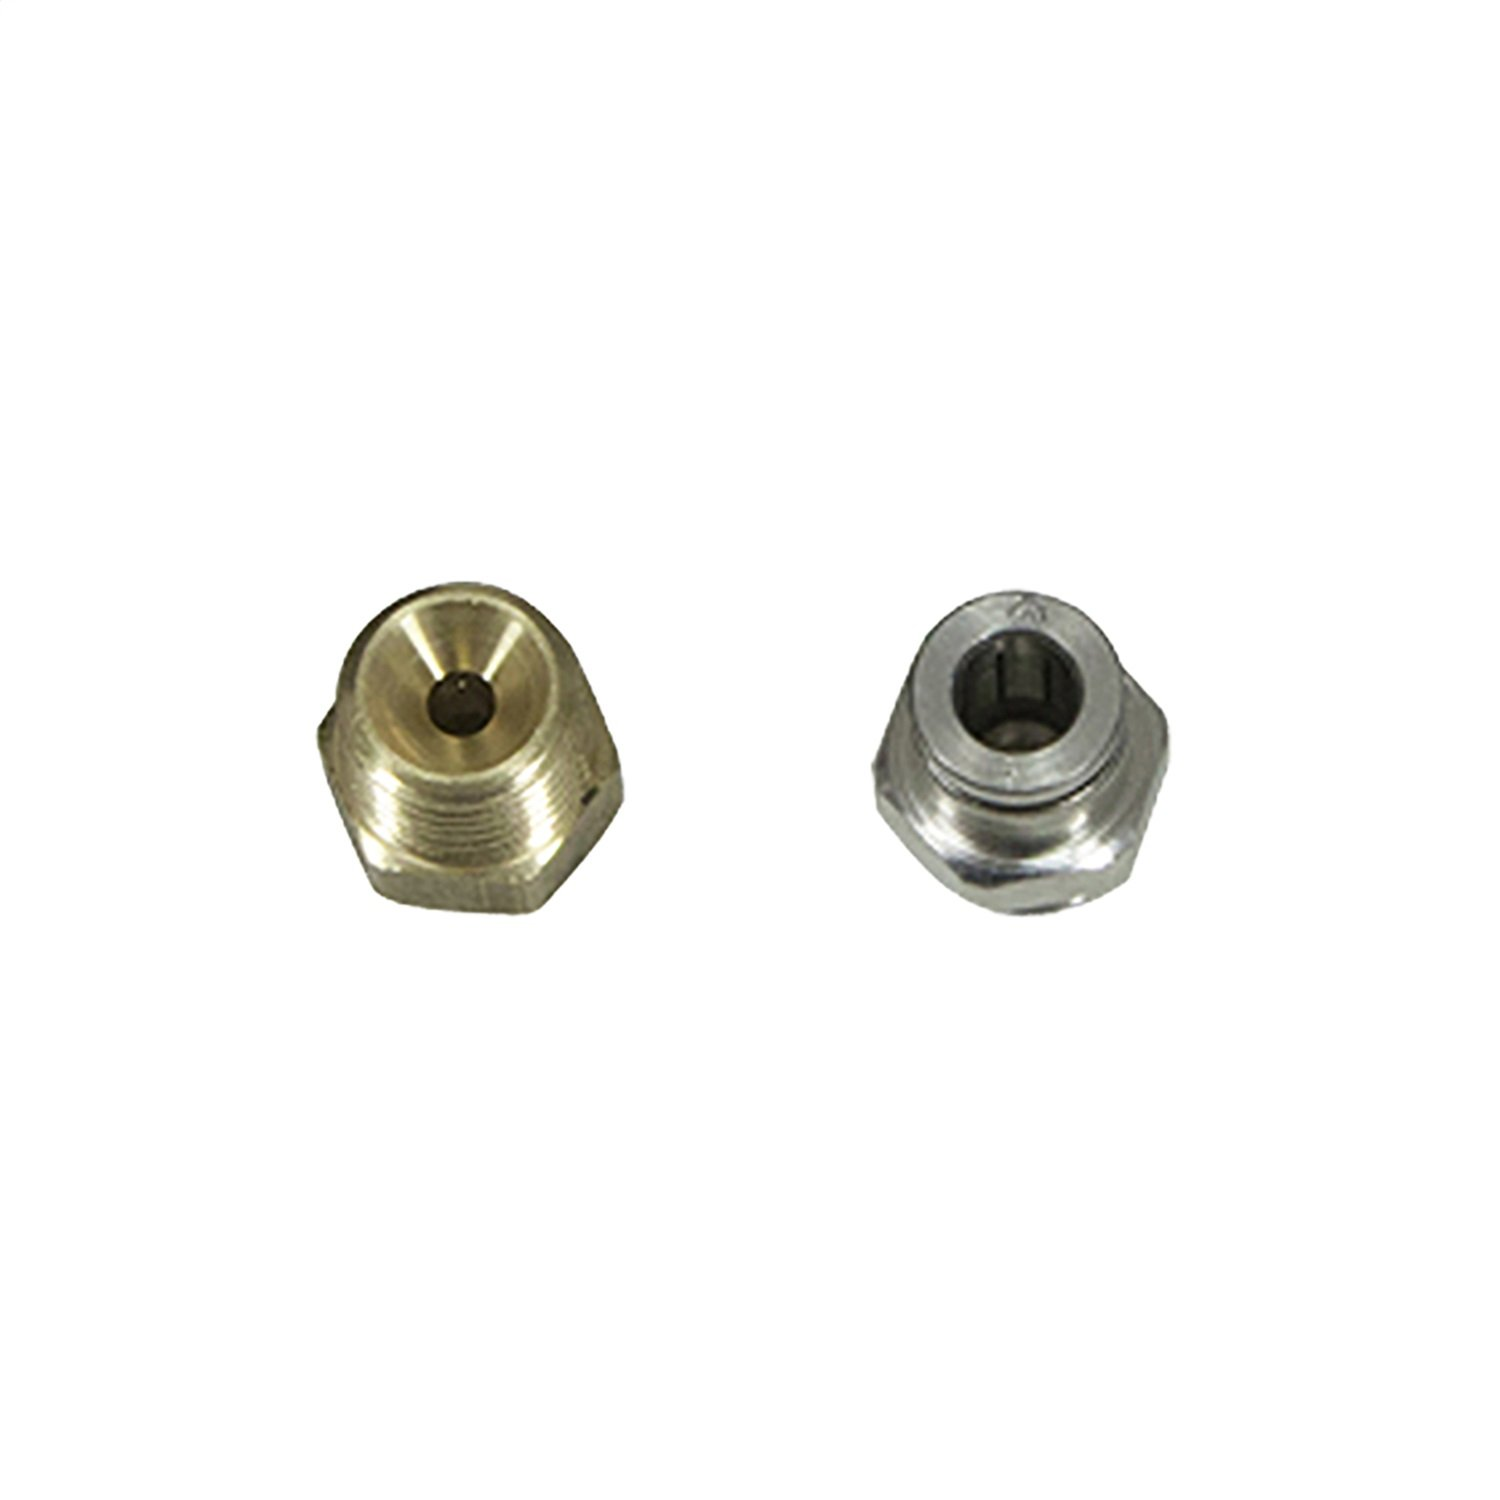 Yukon Gear & Axle (YZLABF-KIT) Zip Locker Bulkhead Fitting Kit